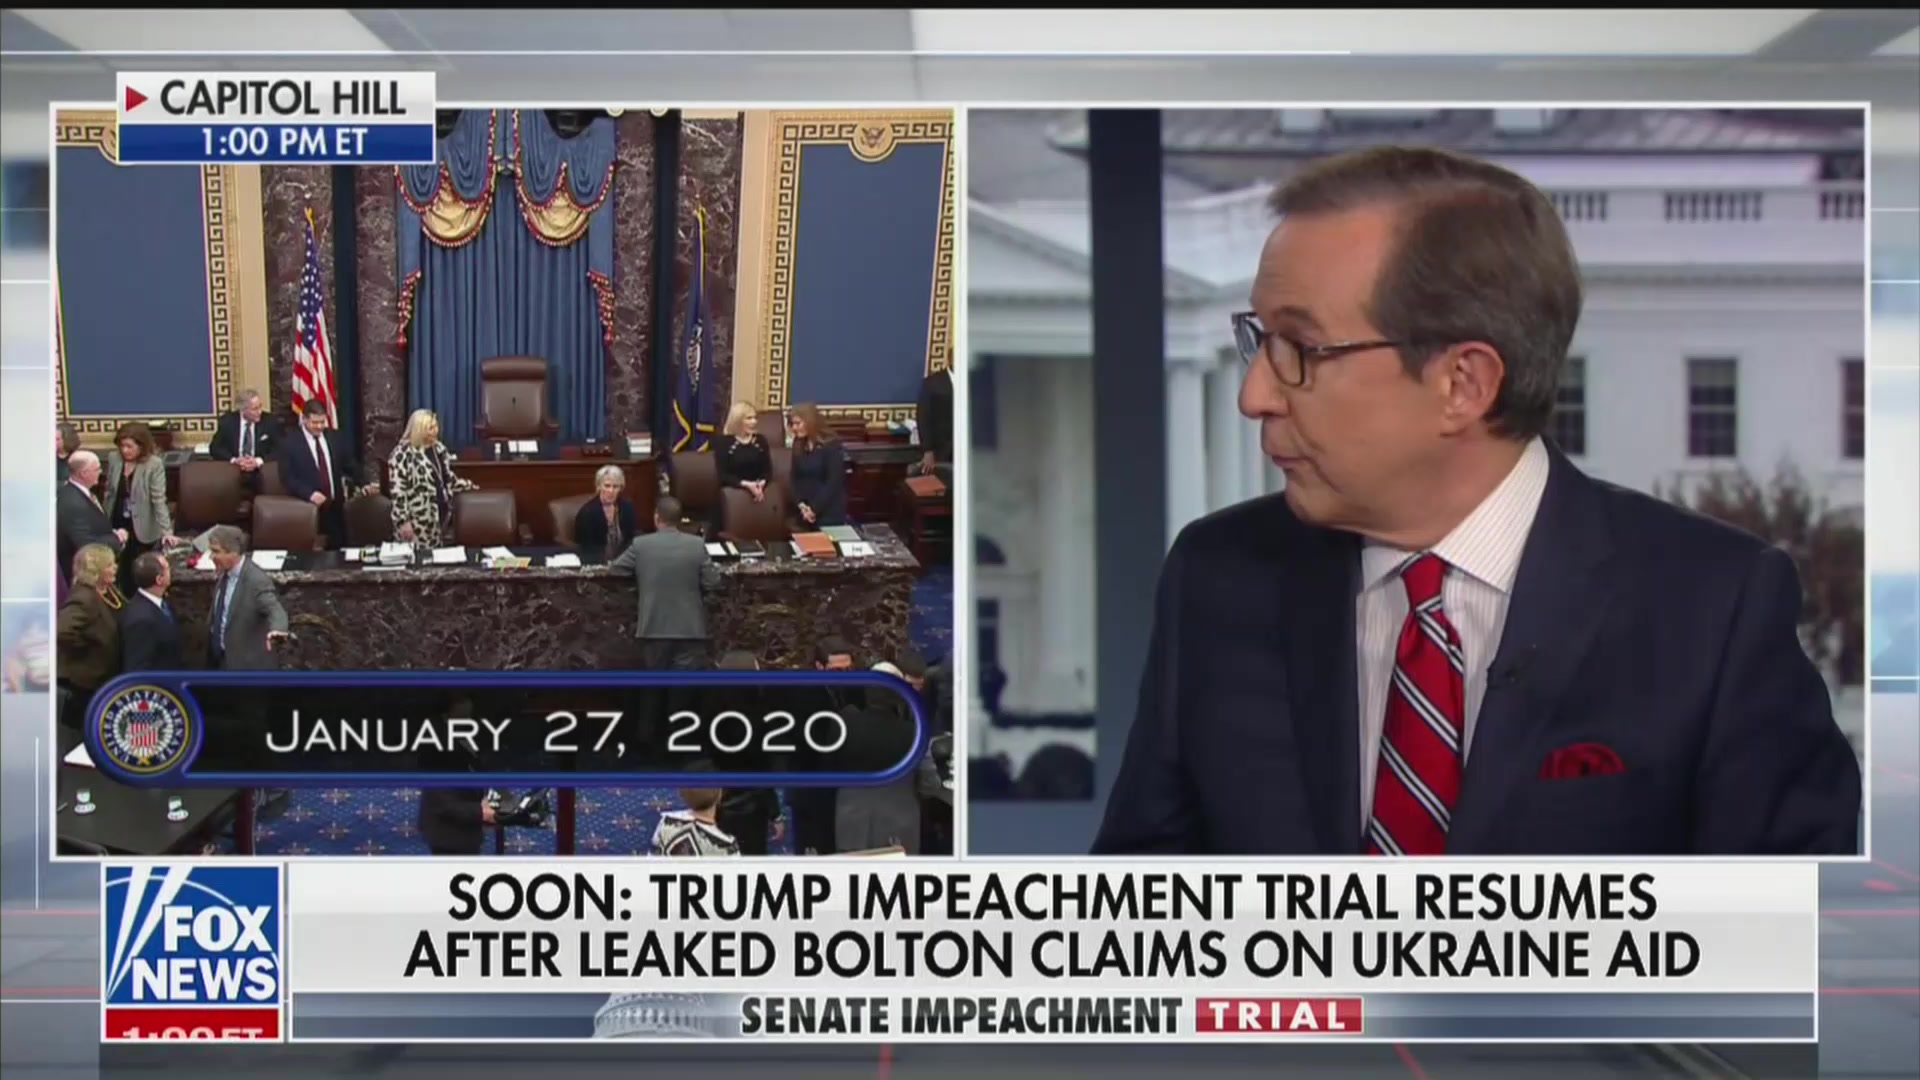 'Get Your Facts Straight!' Fox News' Chris Wallace Tears Into Right-Wing Pundit During Impeachment Debate